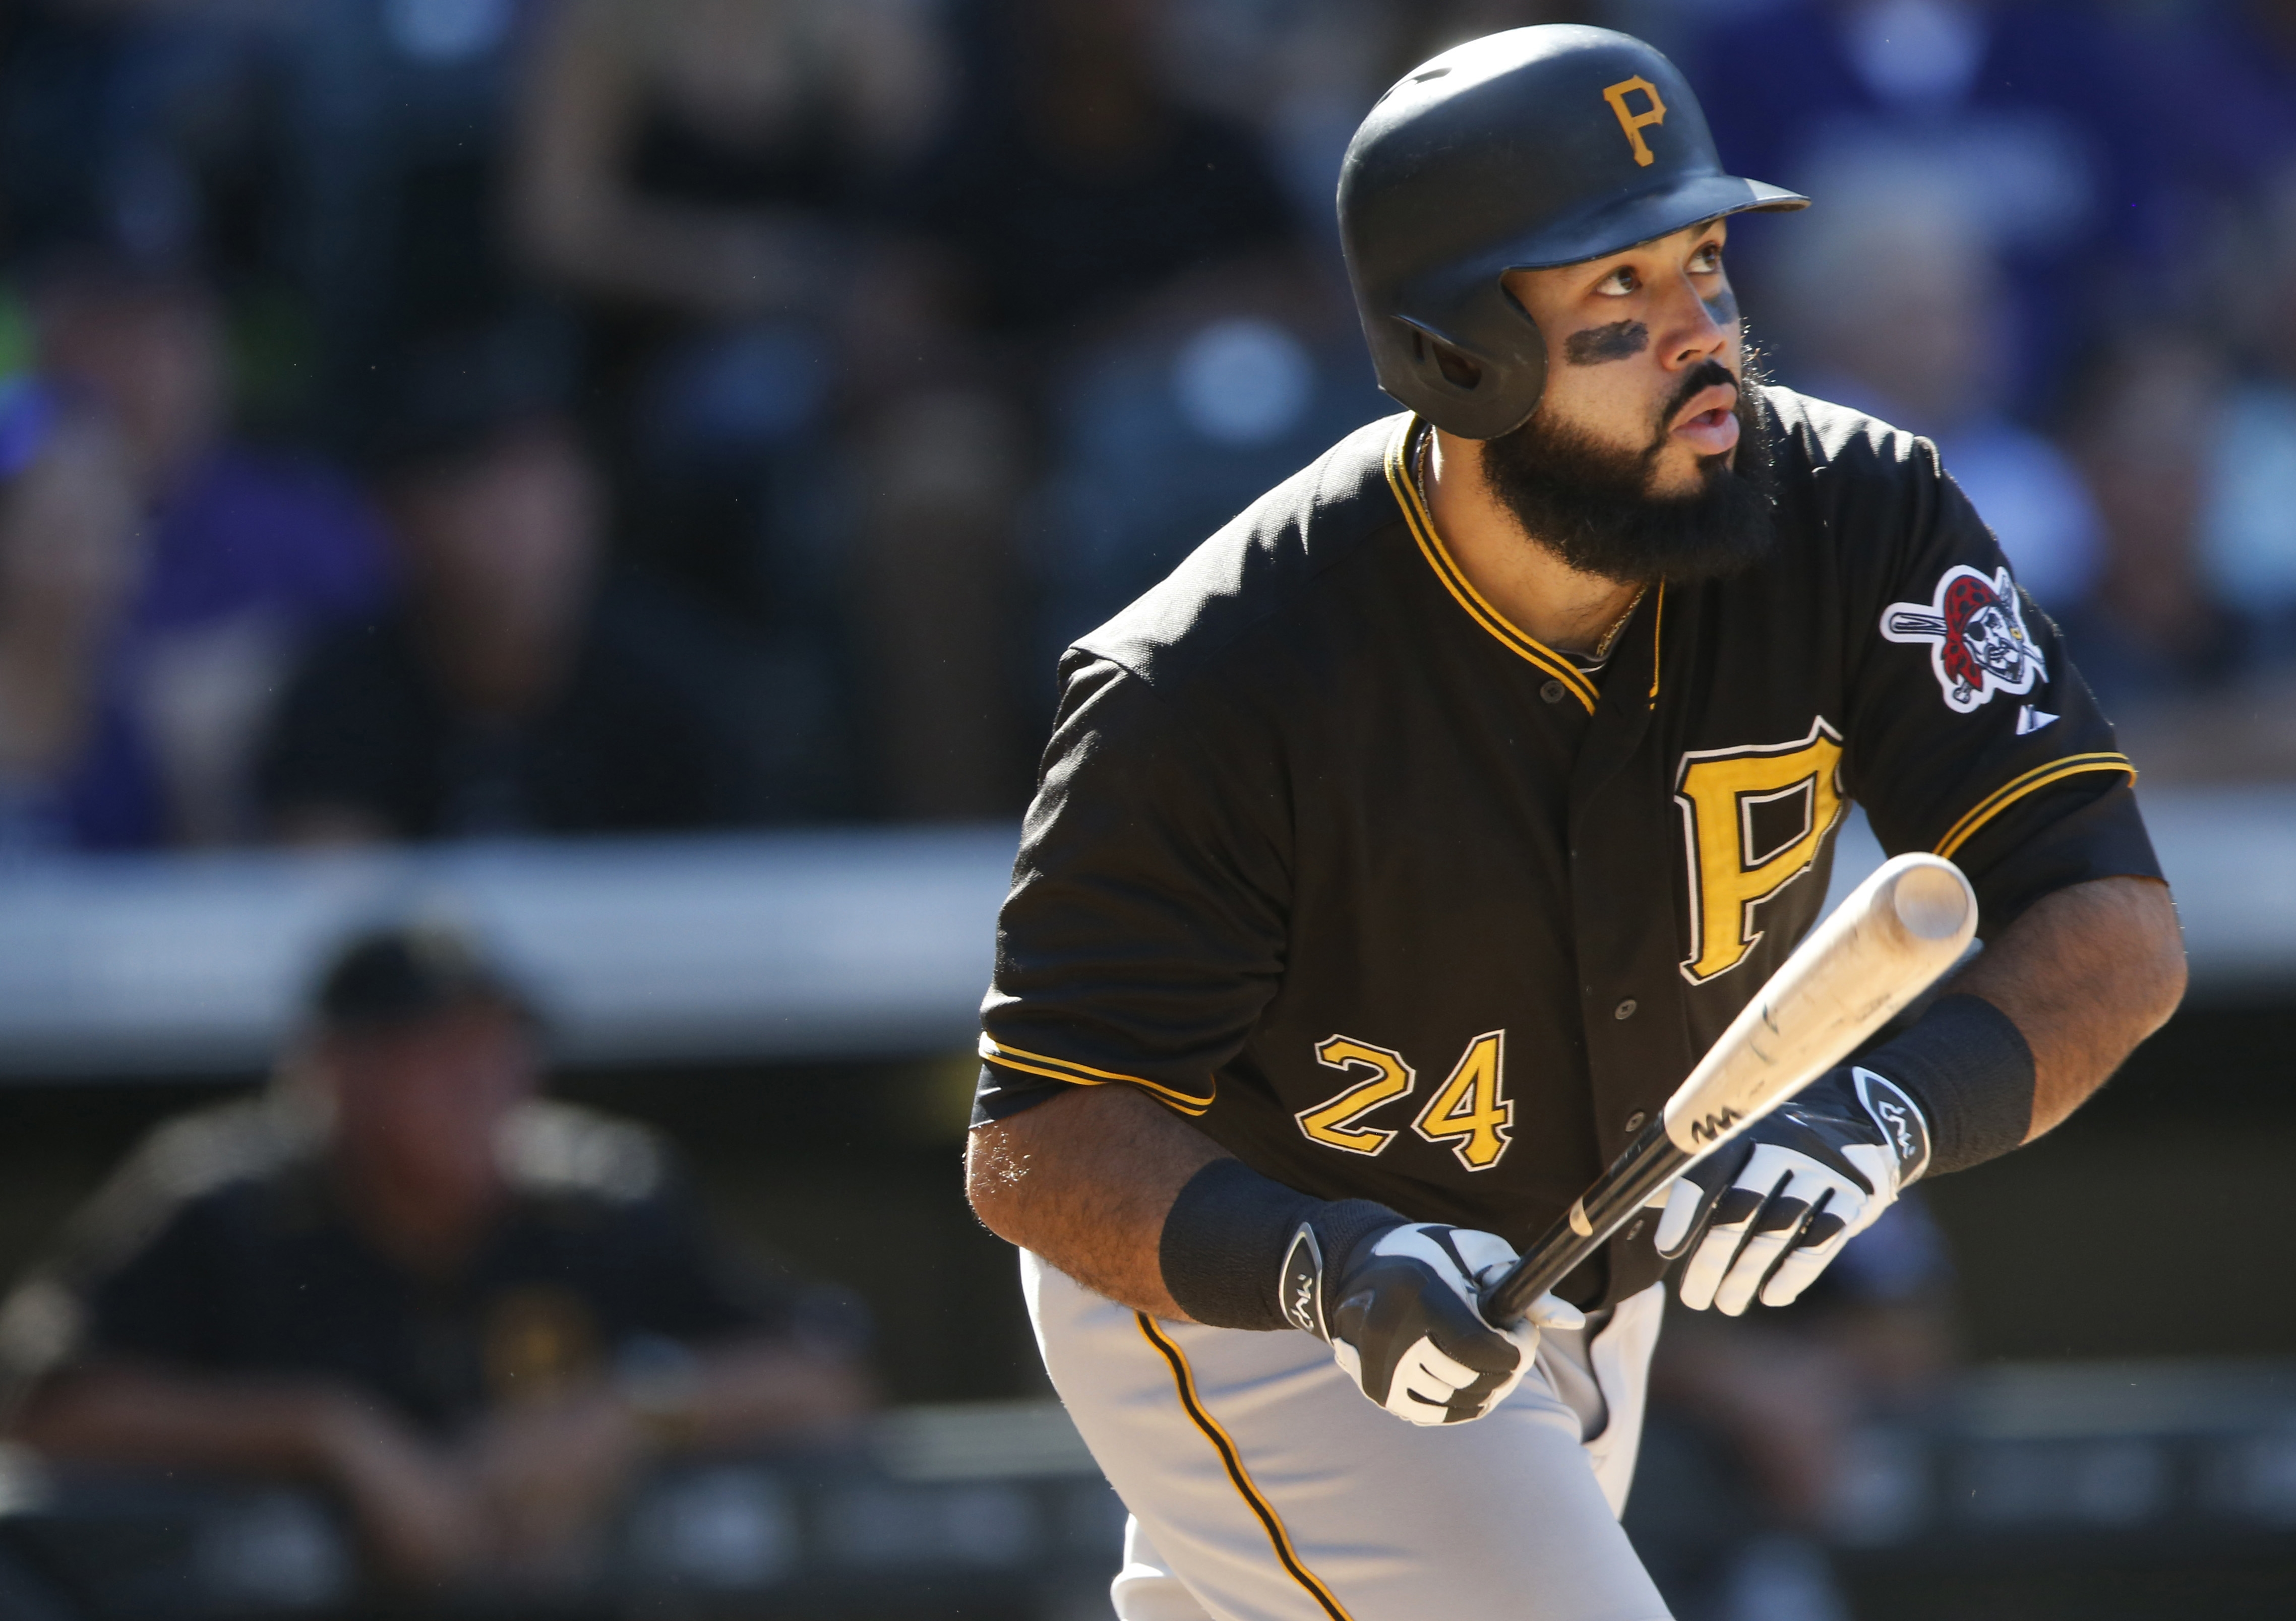 FILE - In this Sept. 24, 2015, file photo, Pittsburgh Pirates' Pedro Alvarez watches his three-run home run off Colorado Rockies relief pitcher Jairo Diaz during the eighth inning of a baseball game in Denver. A person familiar with the negotiations says